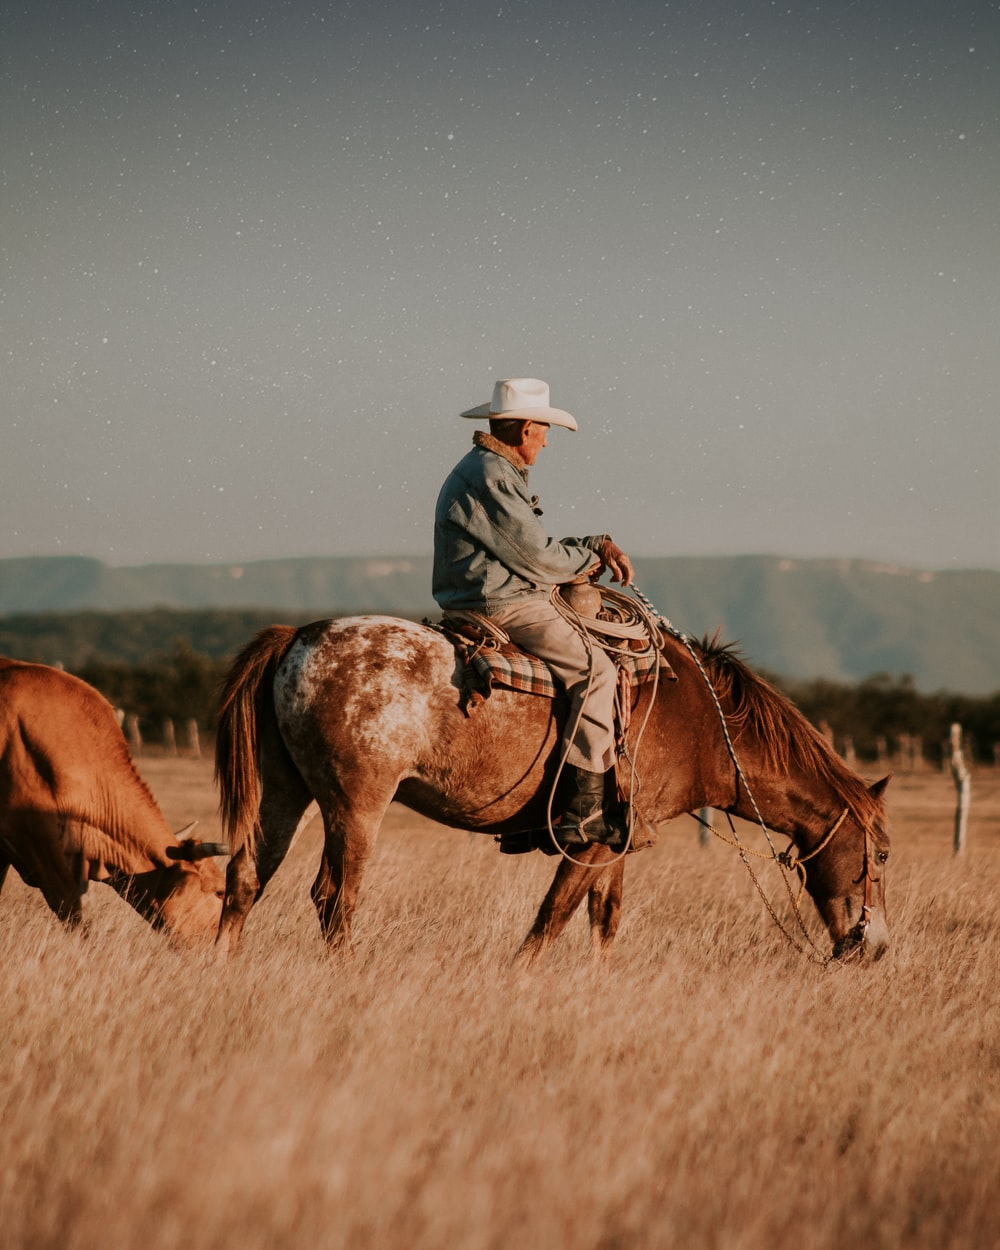 man riding horse on brown grass field during daytime